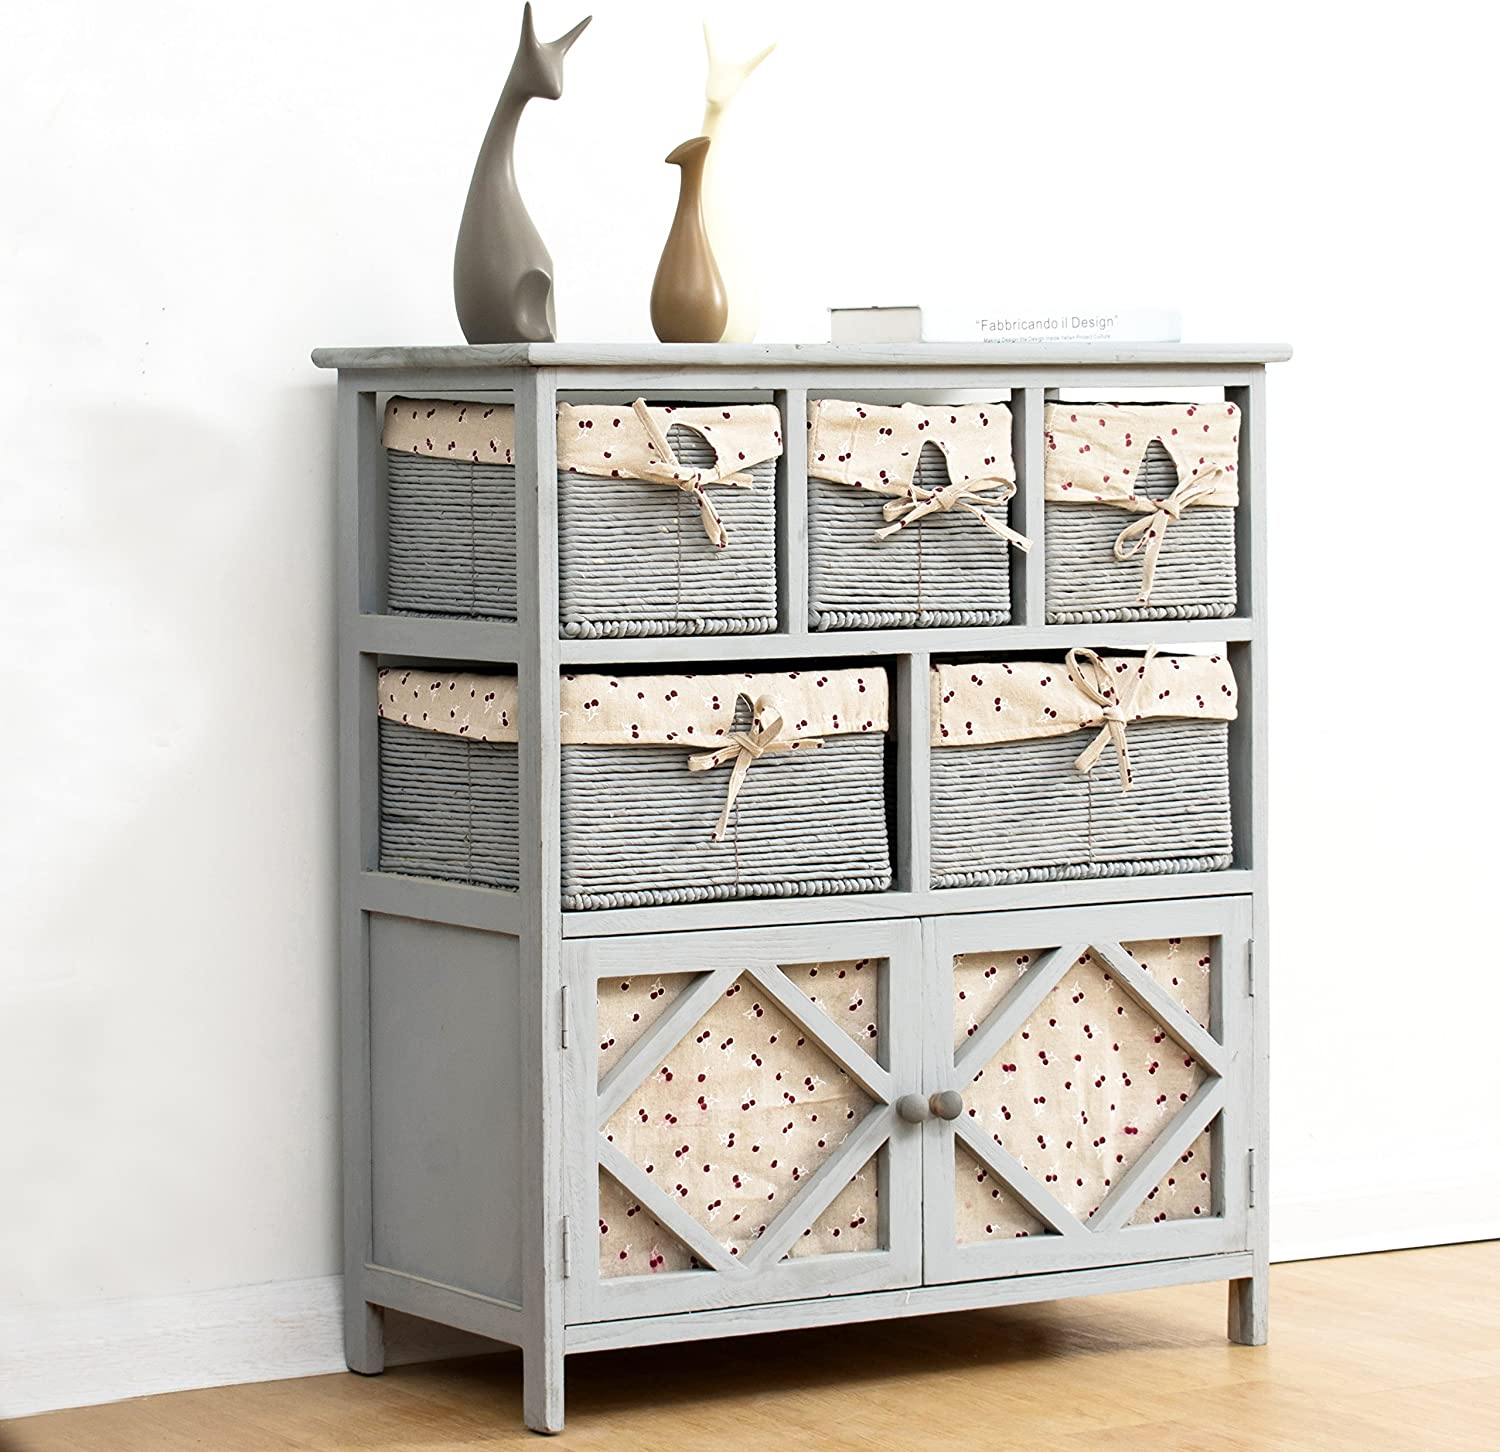 Cherry Tree Furniture Shabby Chic Grey Paulownia Solid Wood Sideboard Drawer Chest with Wicker Baskets